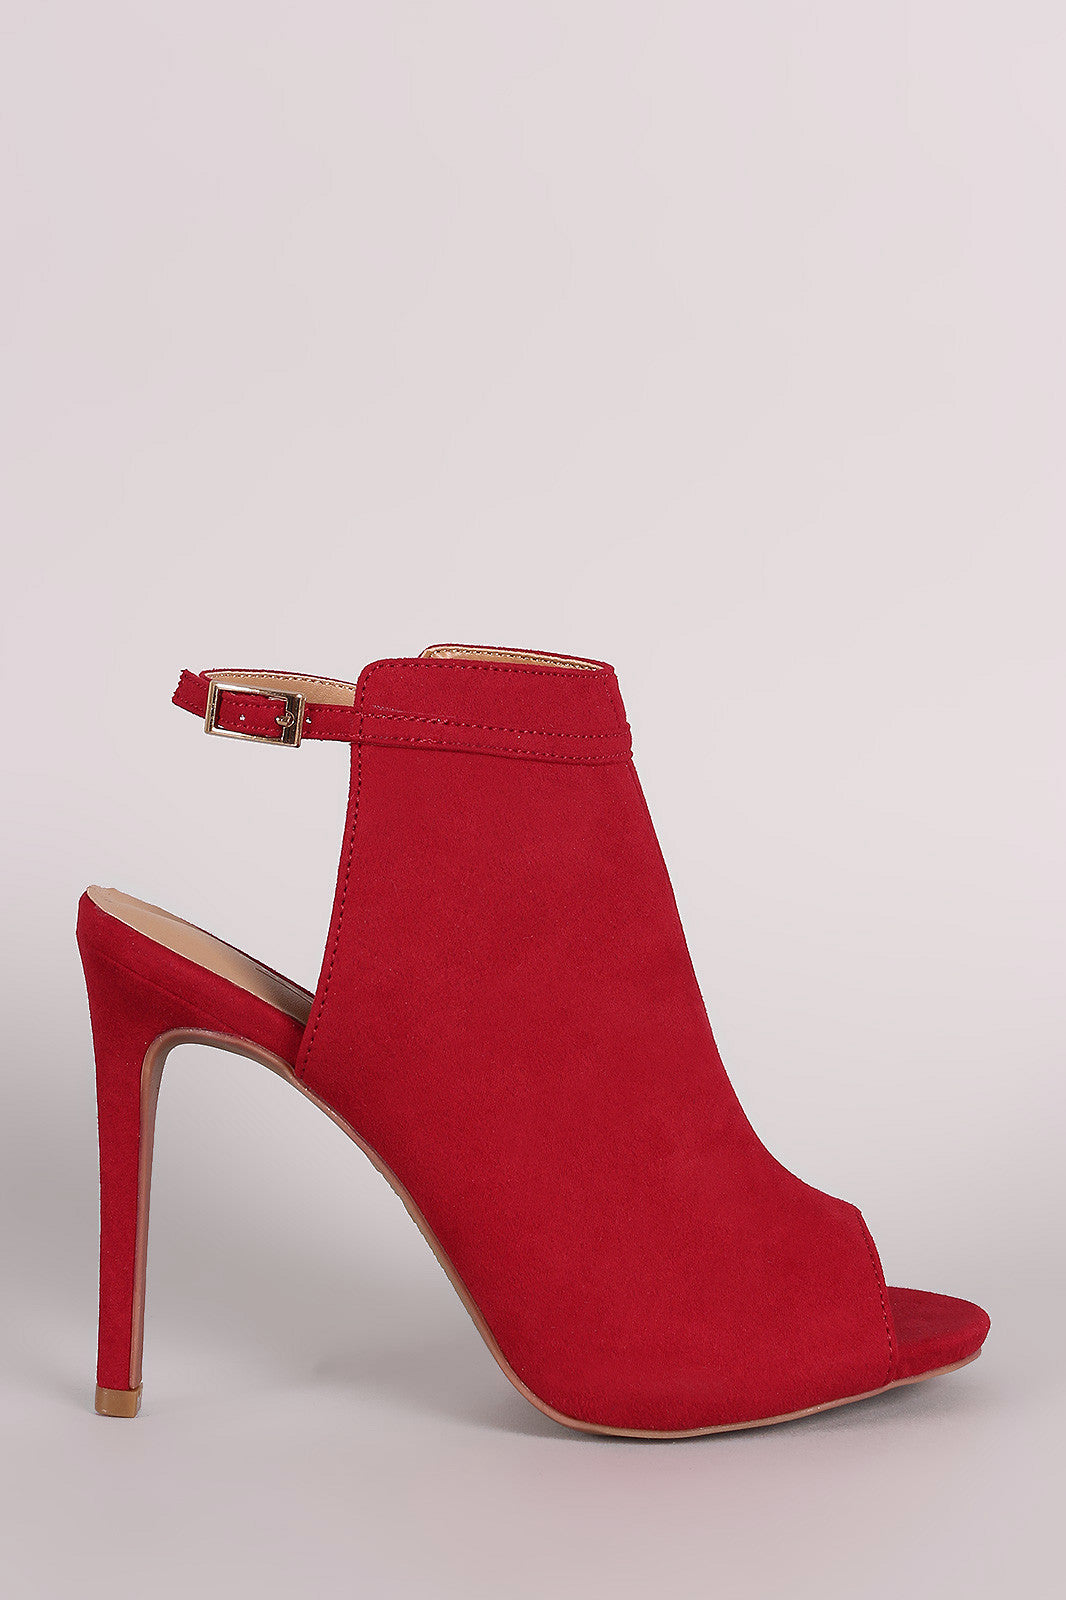 Anne Michelle Suede Peep Toe Mule Booties - Thick 'N' Curvy Shop - 1